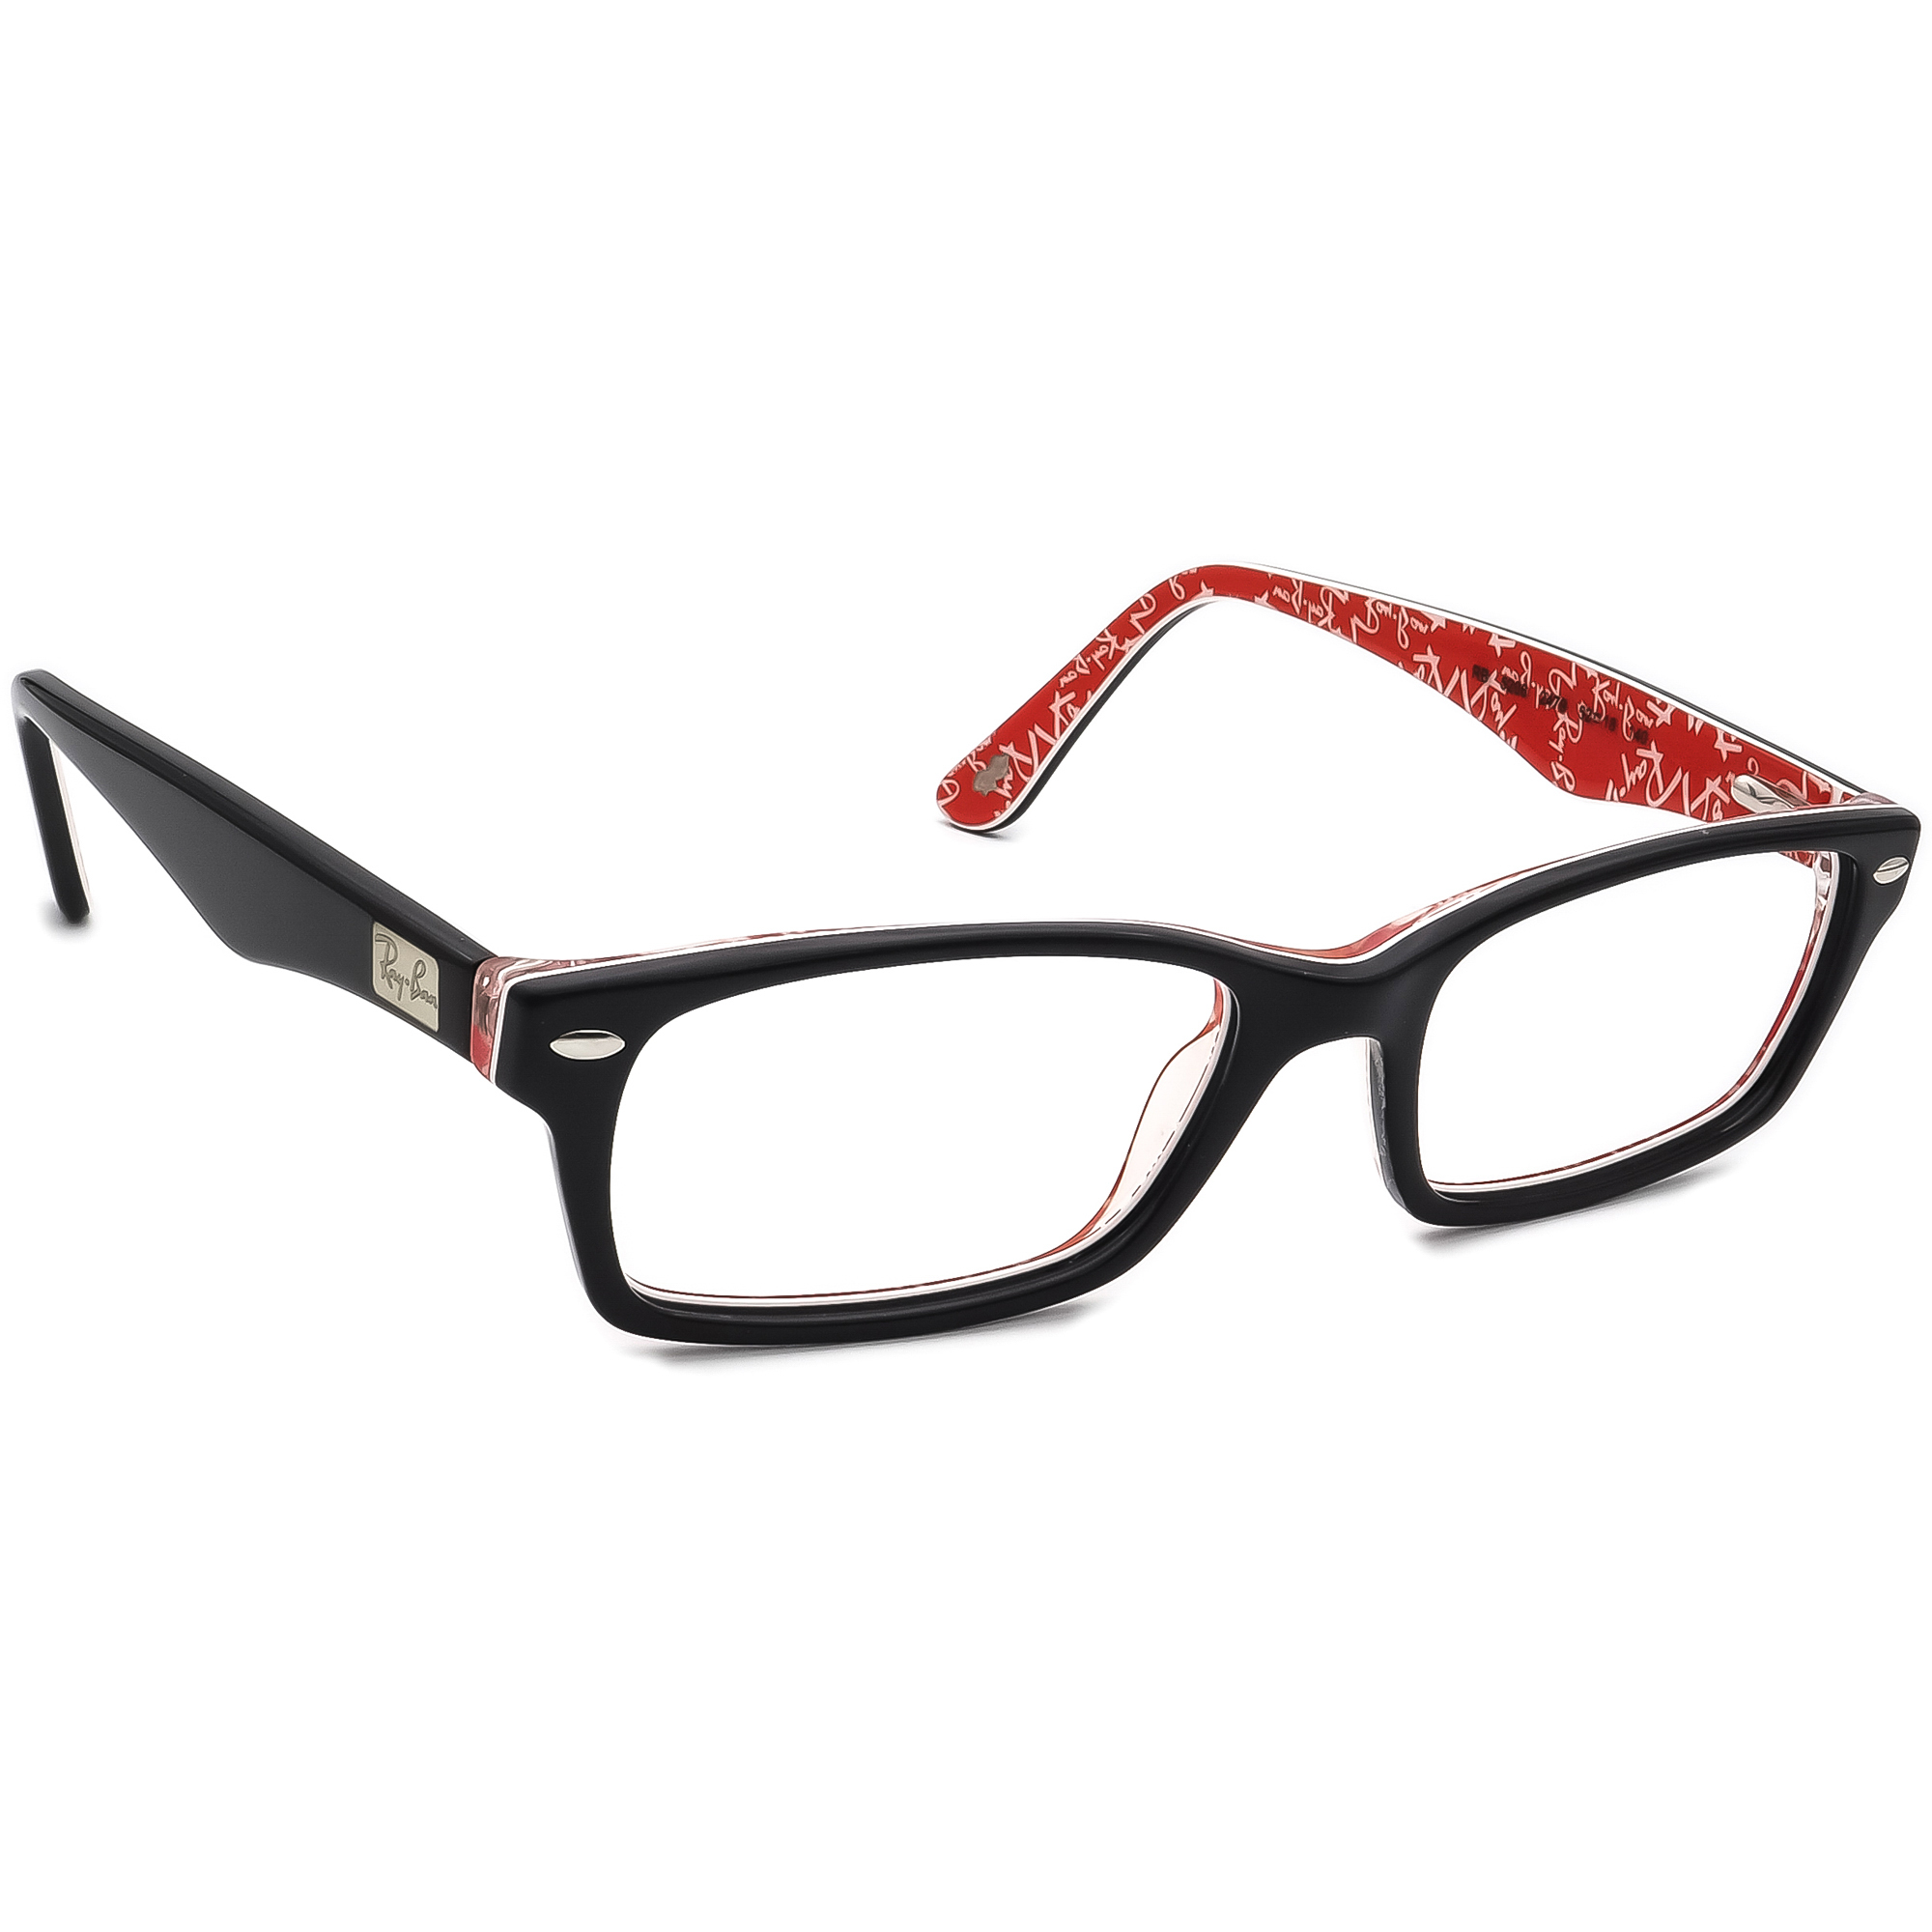 Ray Ban Eyeglasses RB 5206 2479 Black Rectangular Frame 52[]18 140